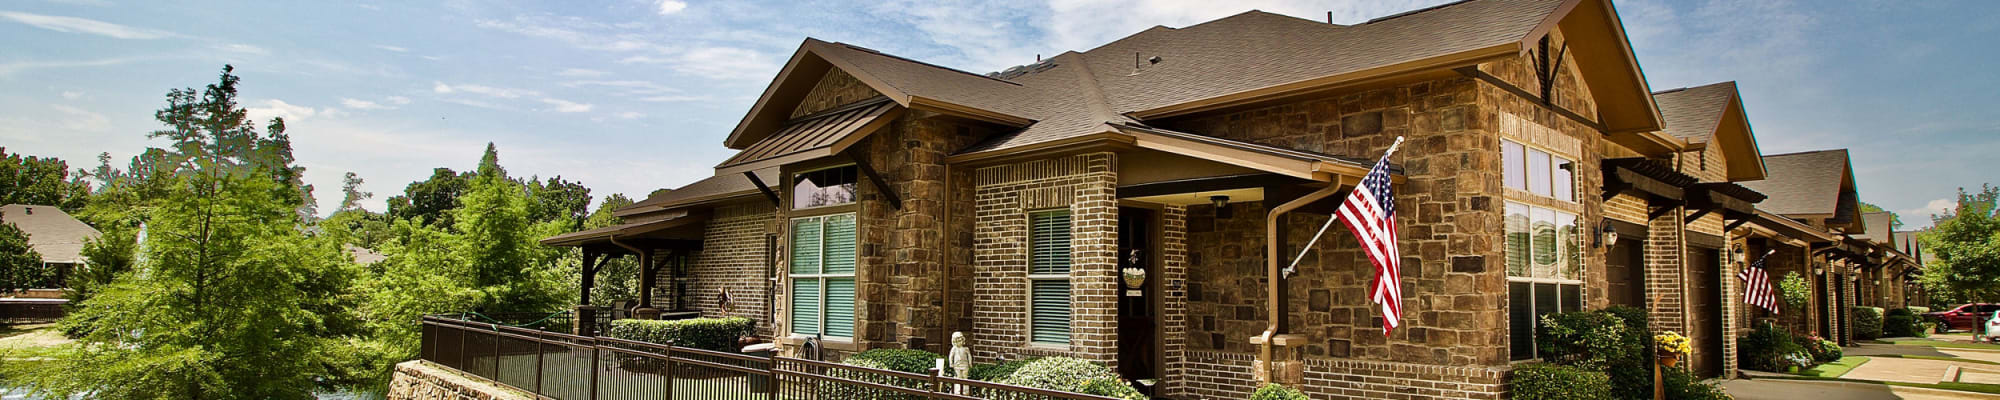 Independent living at Watercrest at Mansfield in Mansfield, Texas